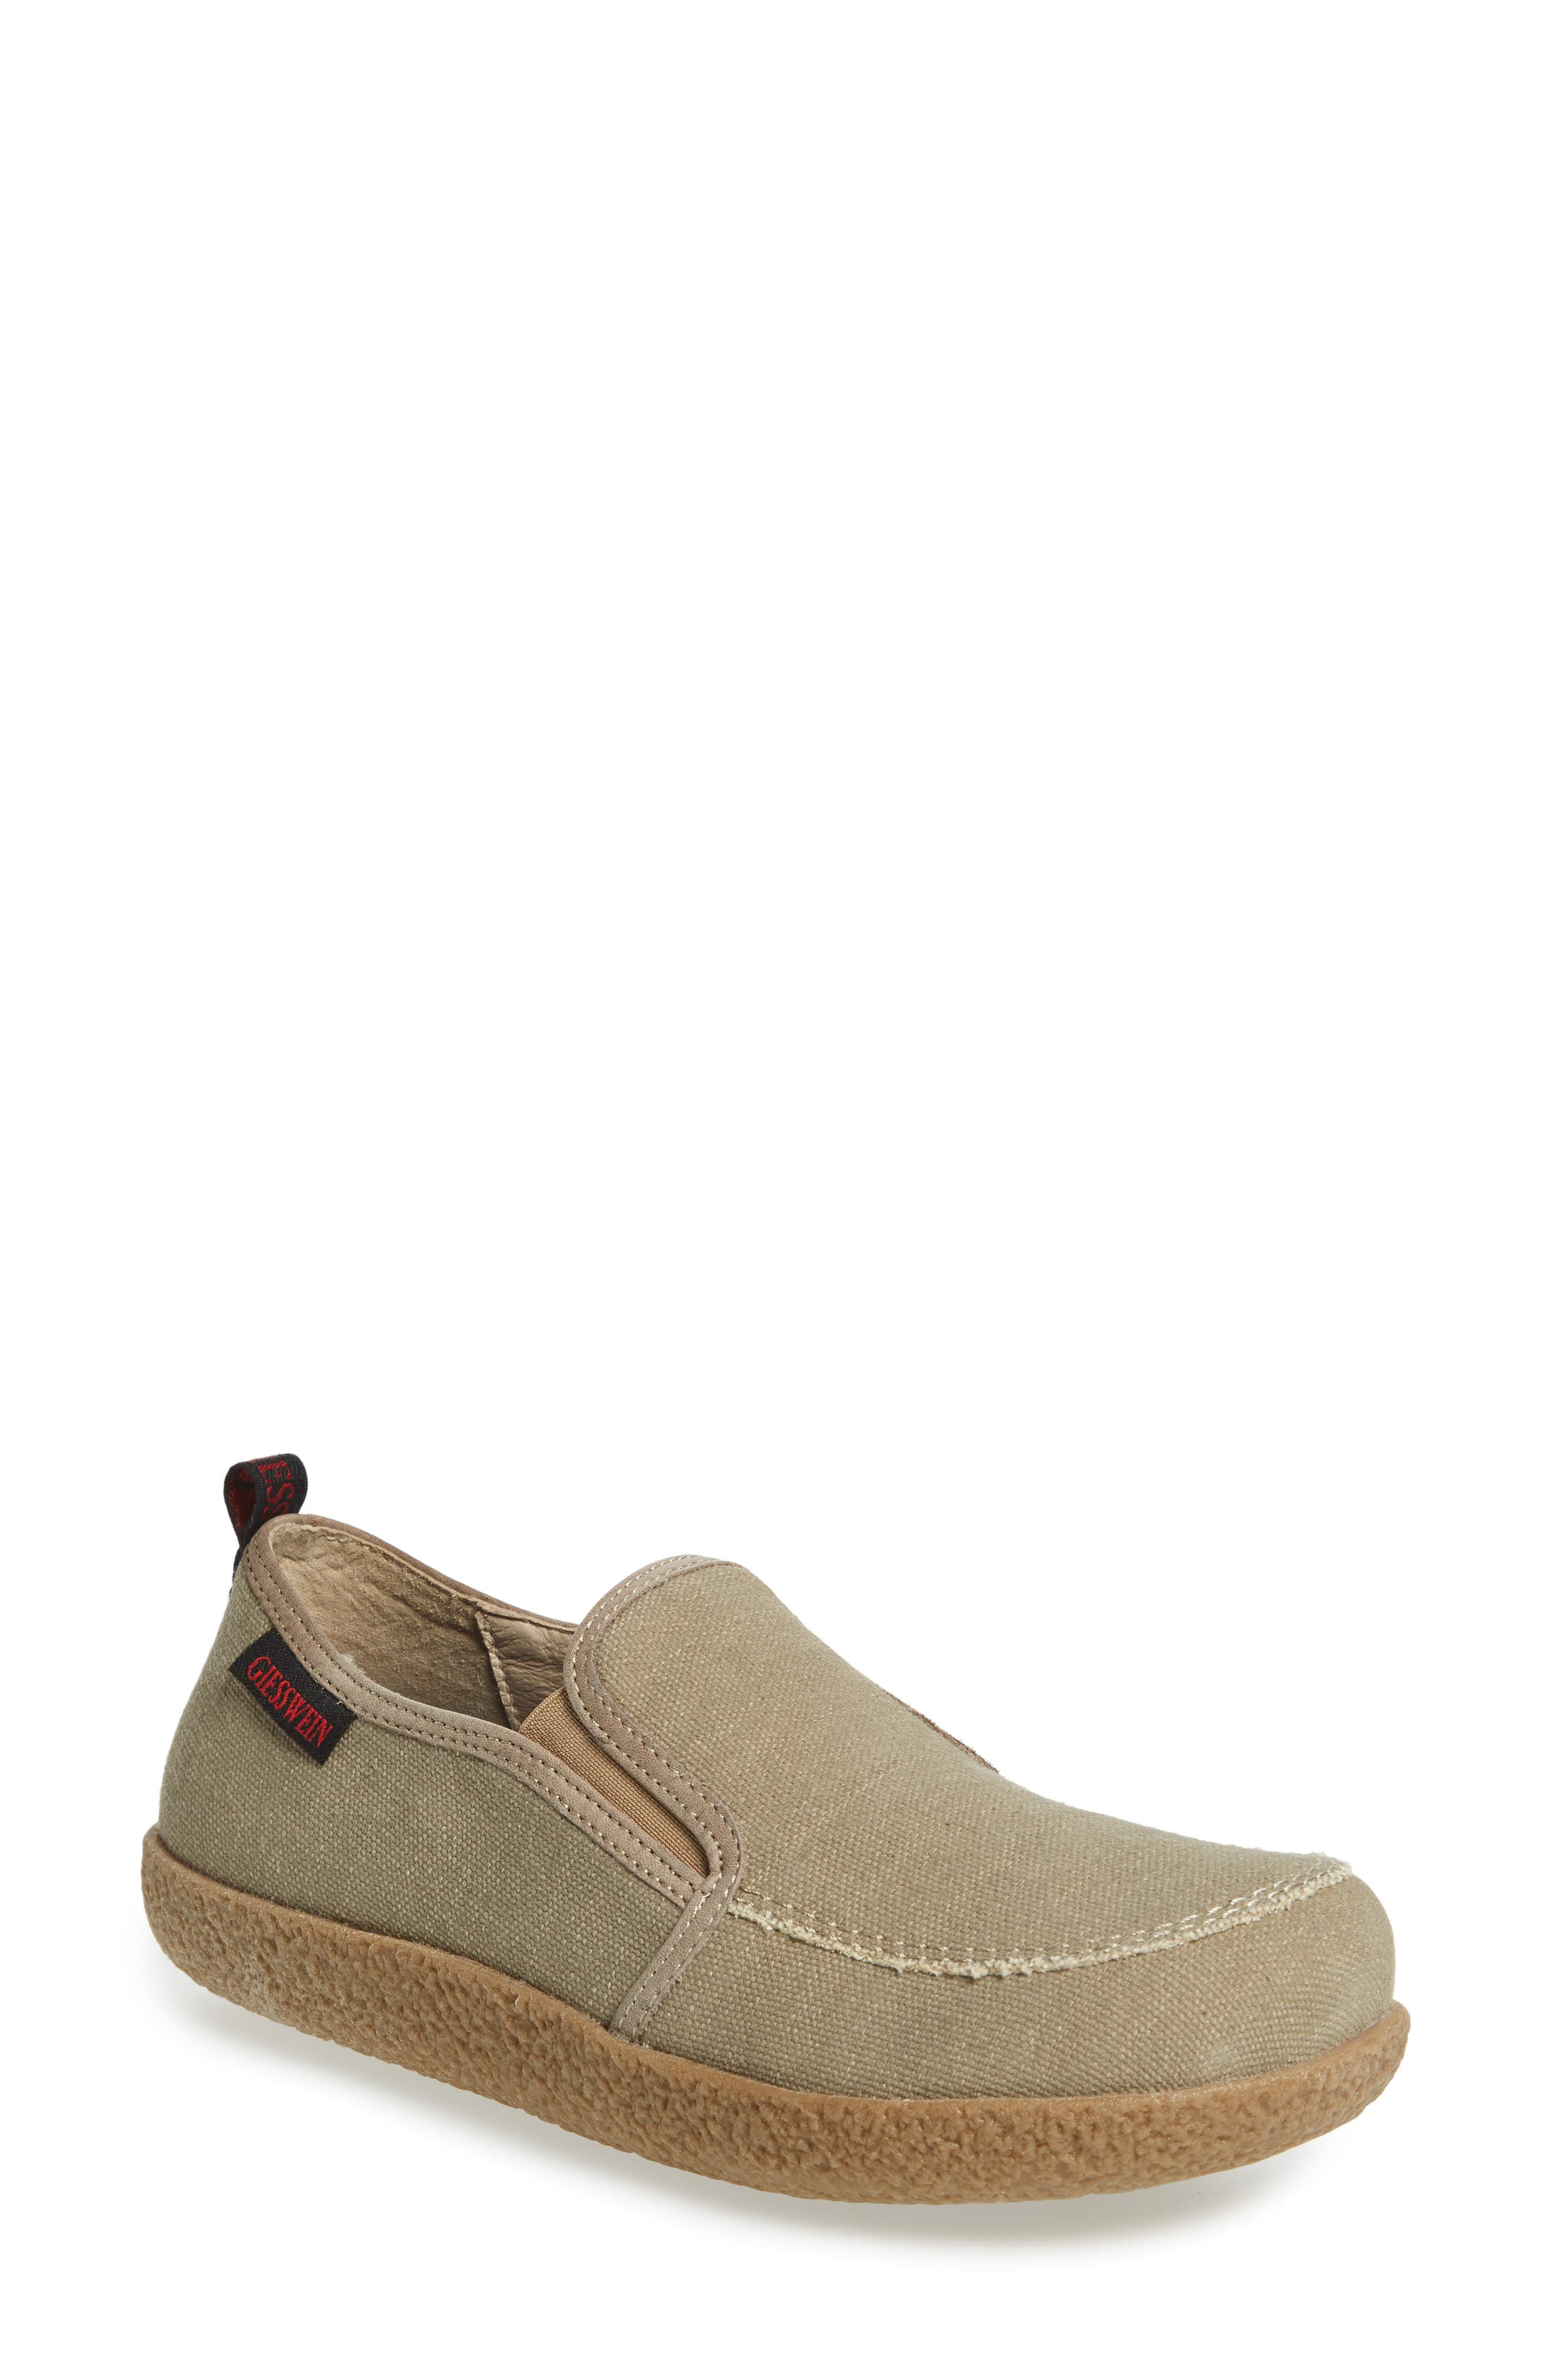 Reith Loafer,                         Main,                         color, Sesame Leather